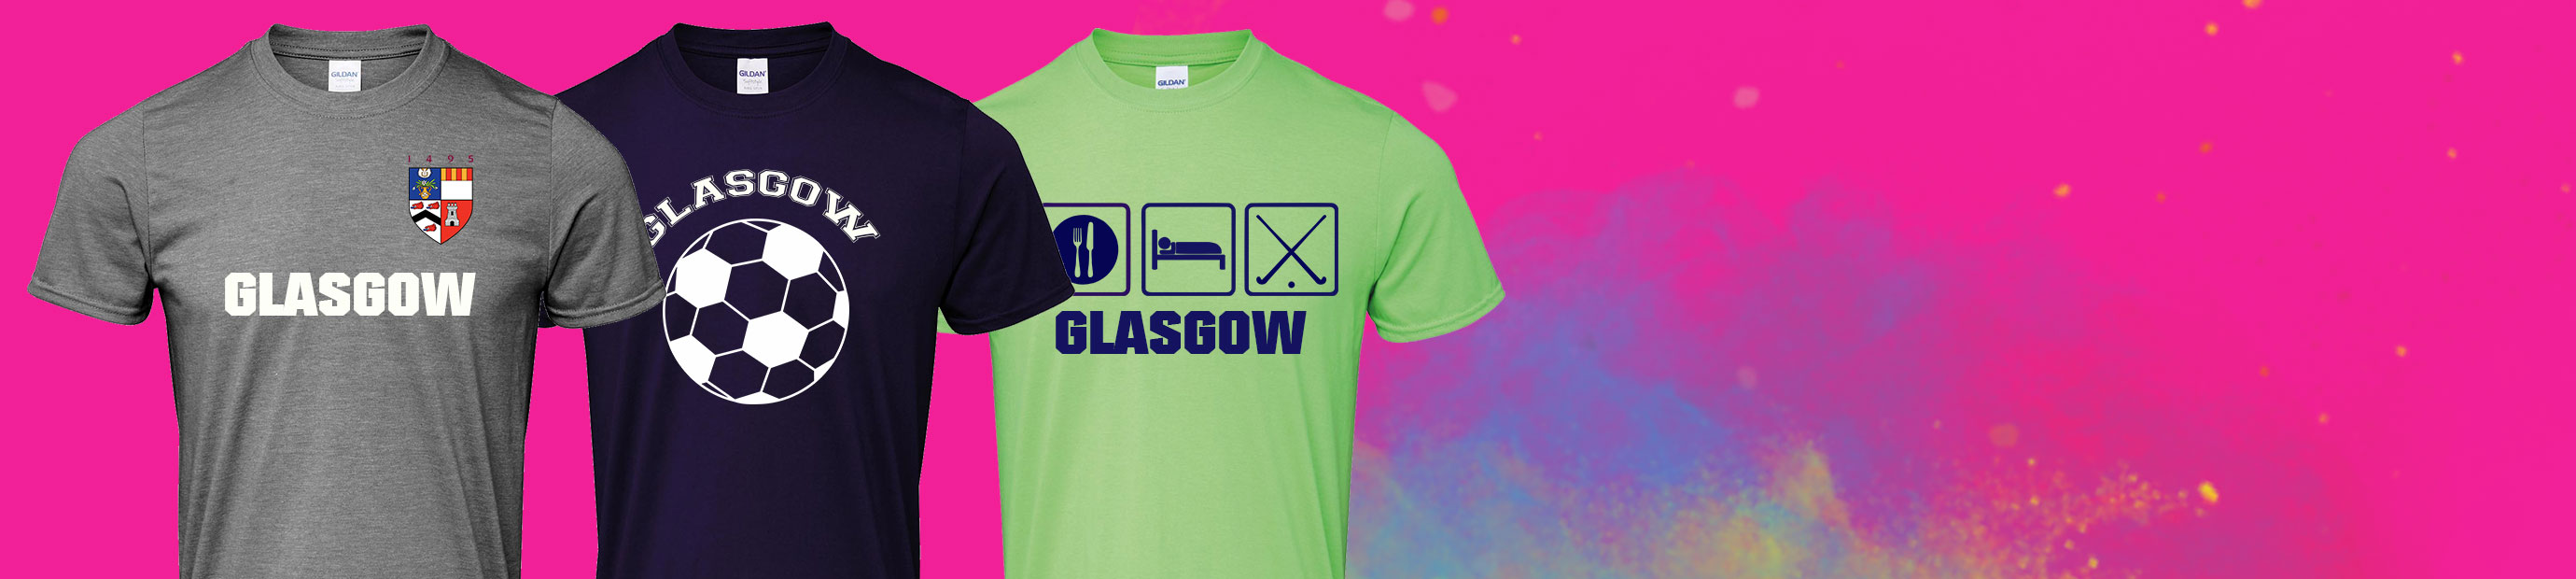 T-Shirt Printing in Glasgow